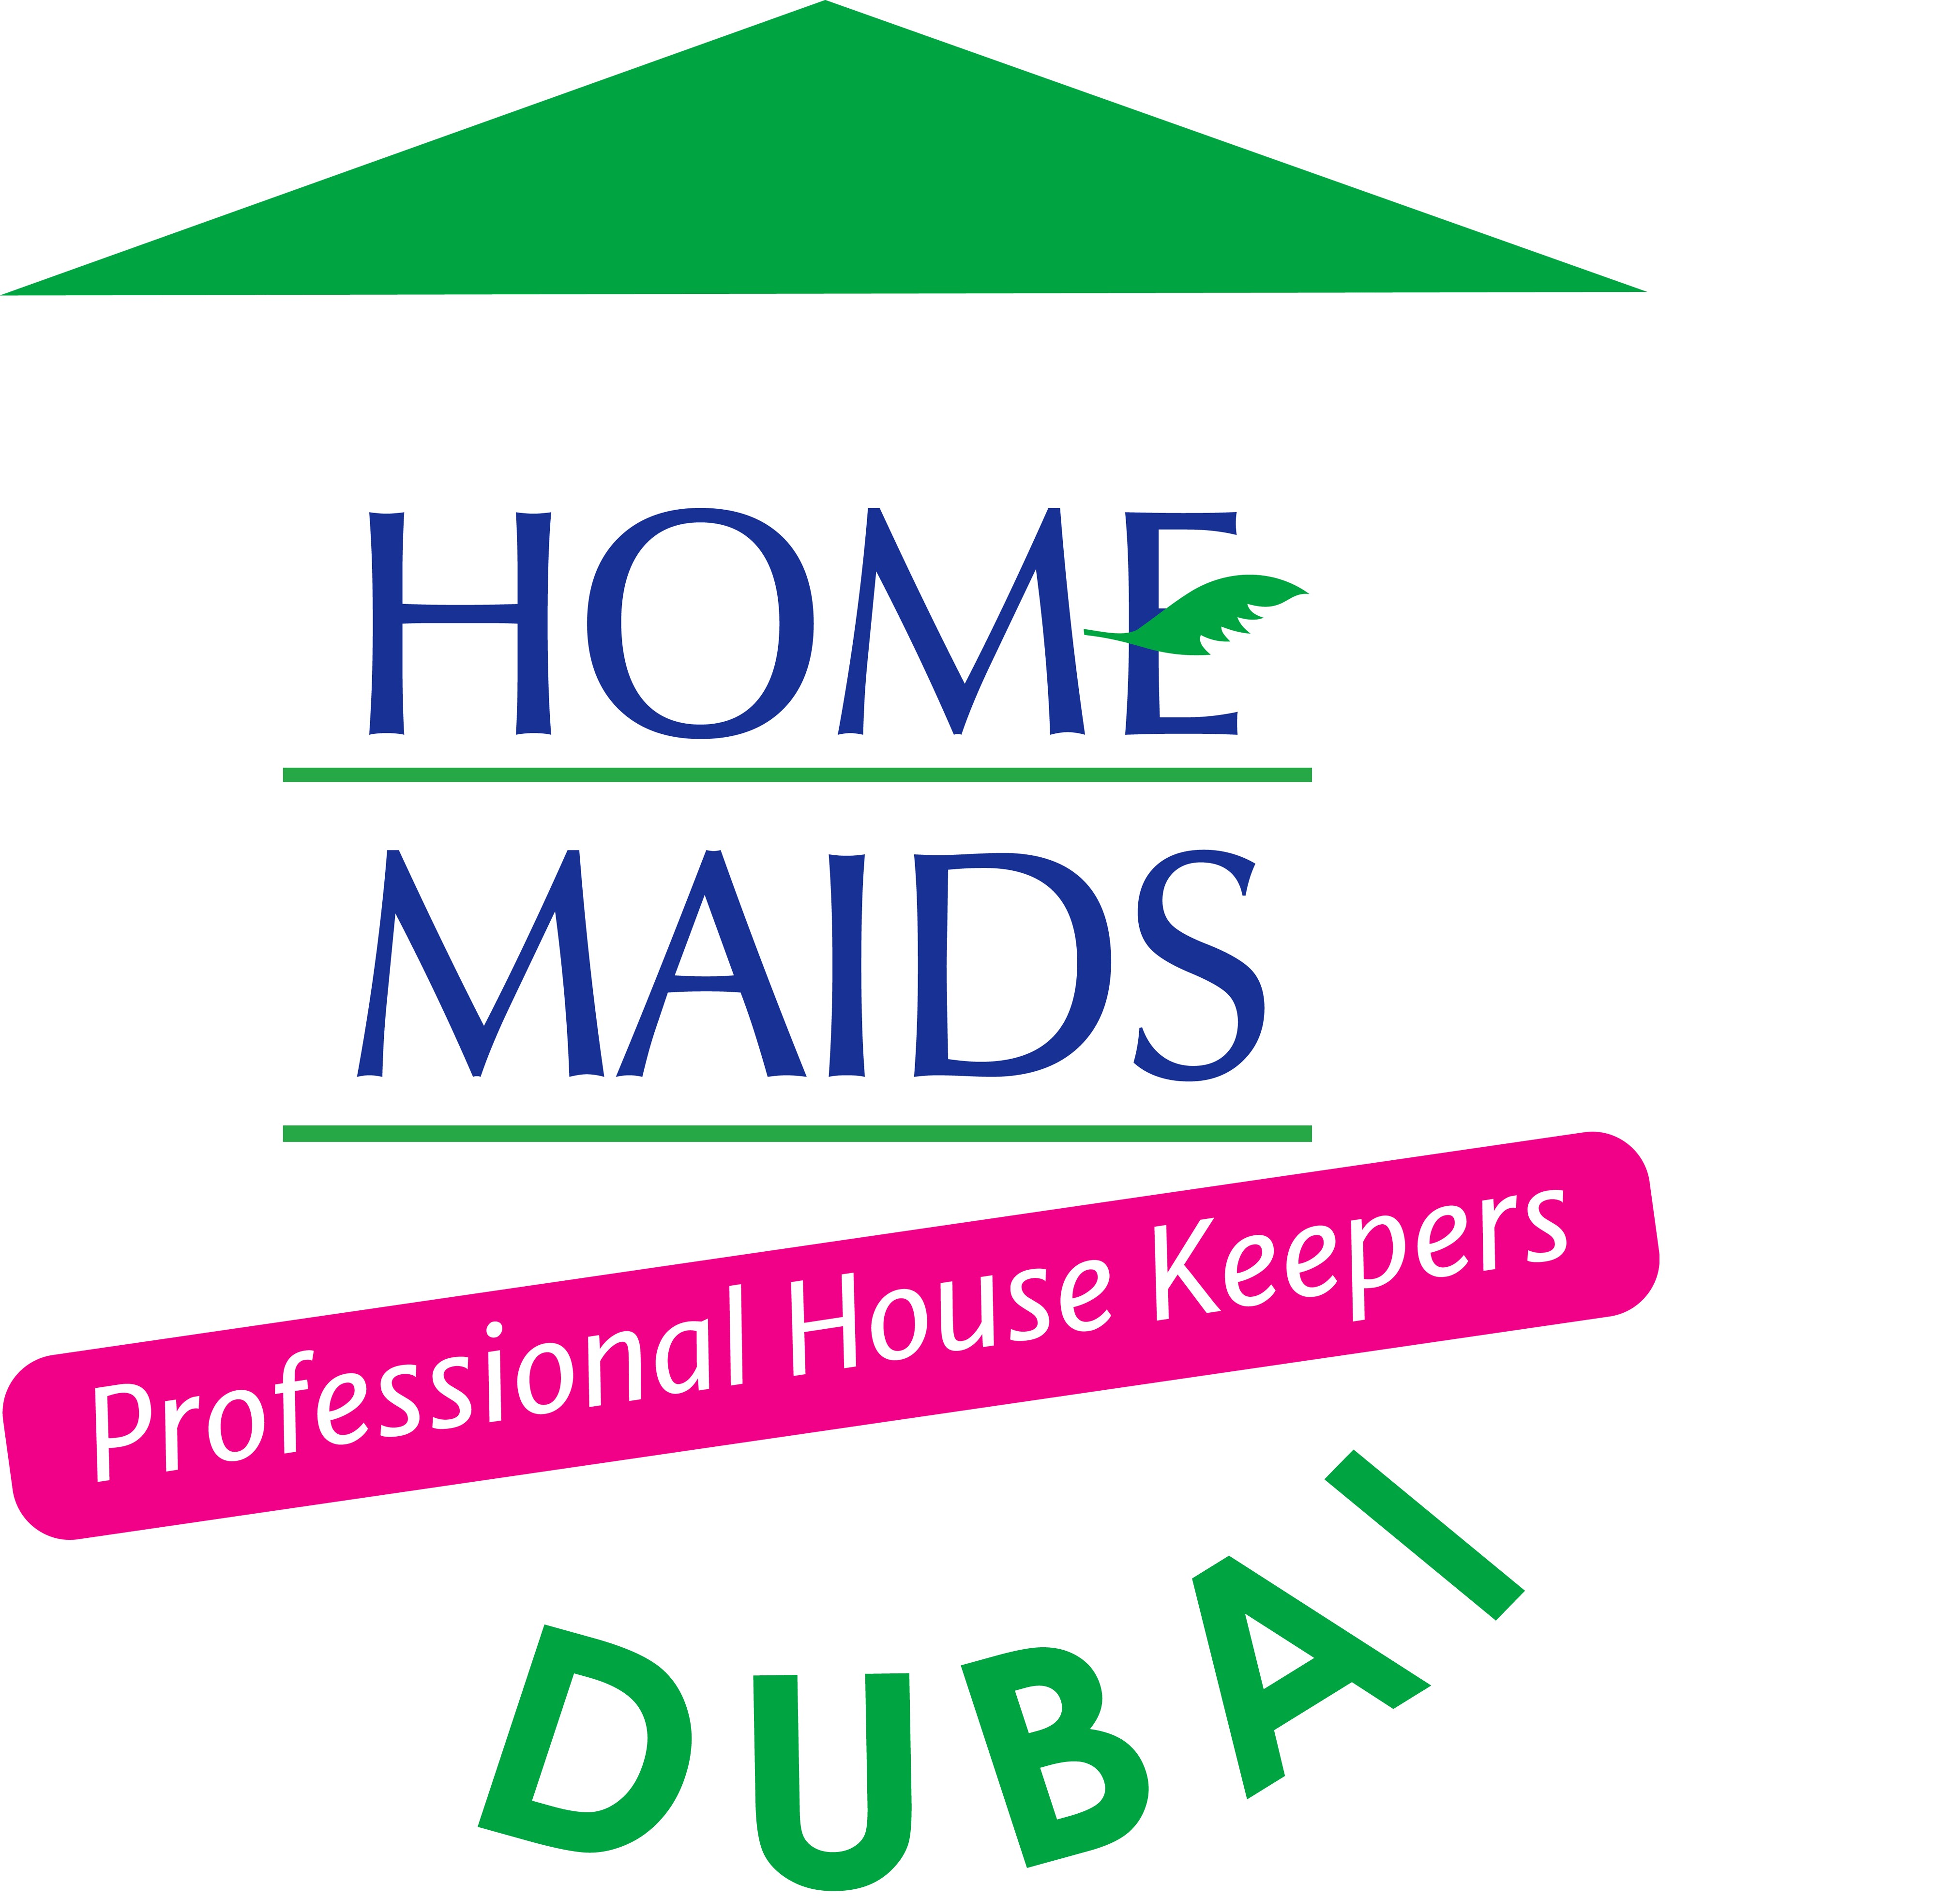 Home Maids in Dubai | House Cleaning Services Dubai